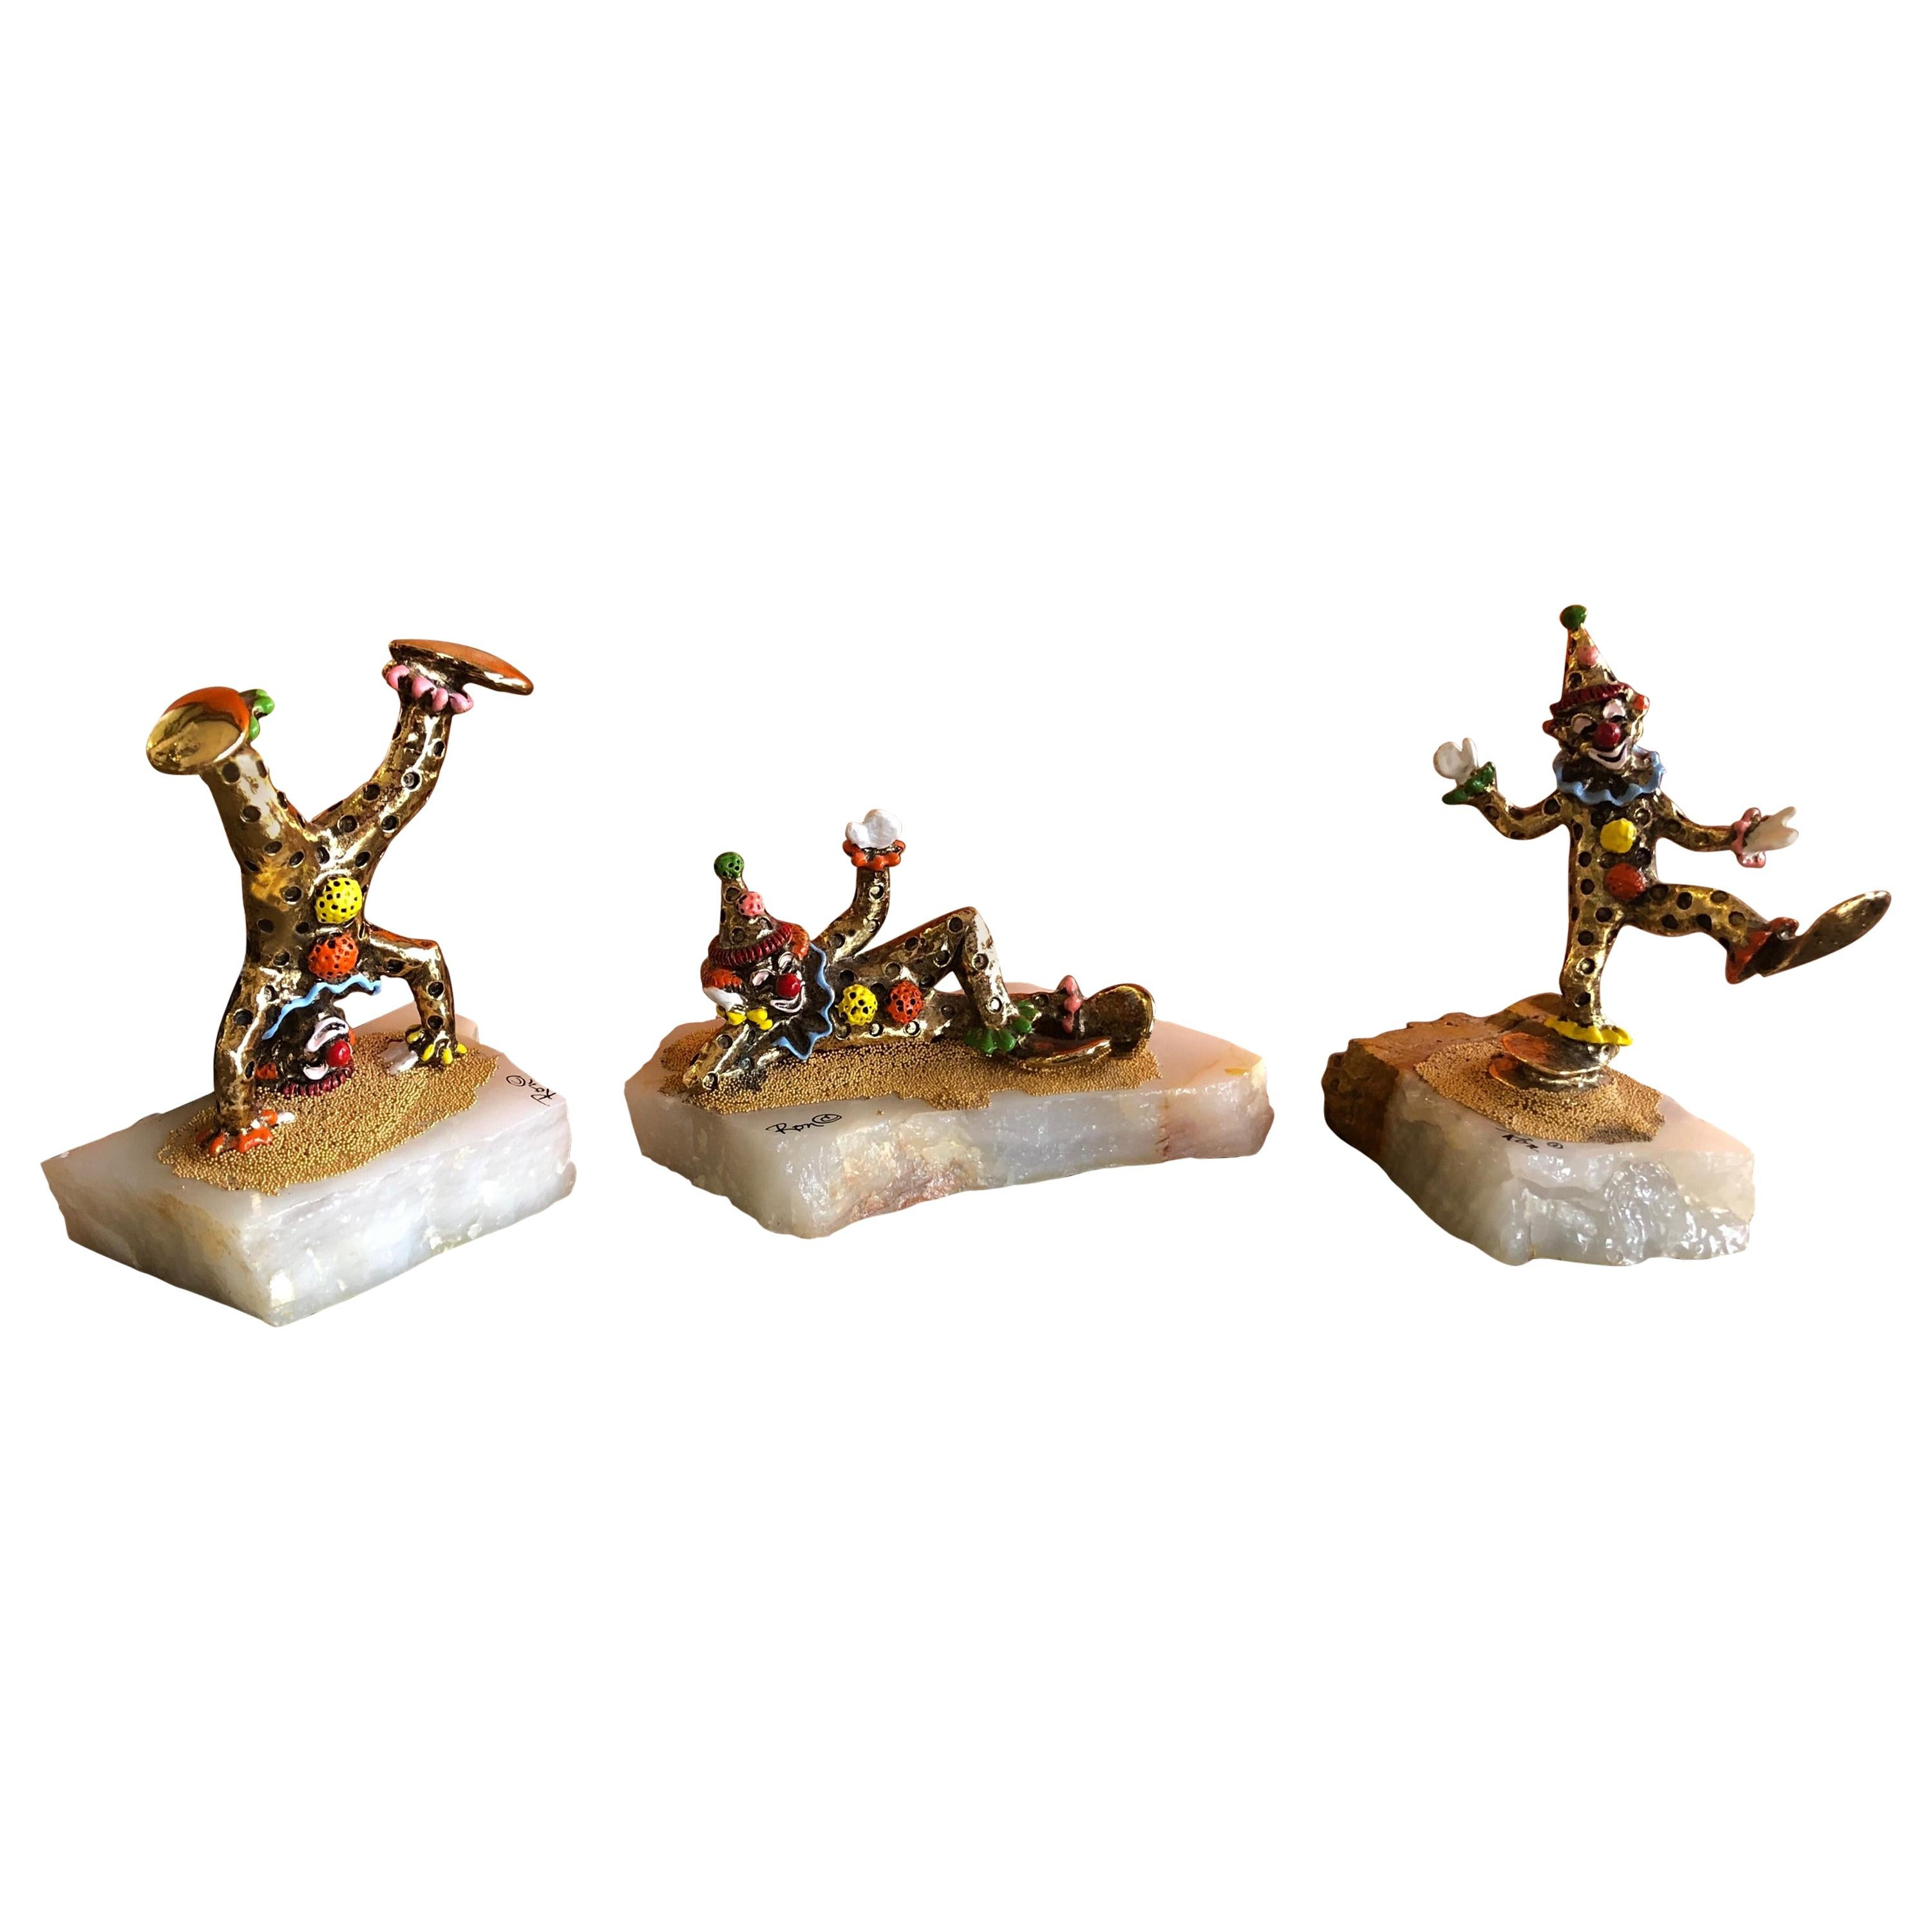 Set of Three Whimsical Bronze Clown Sculptures with Enamel Highlights by Ron Lee